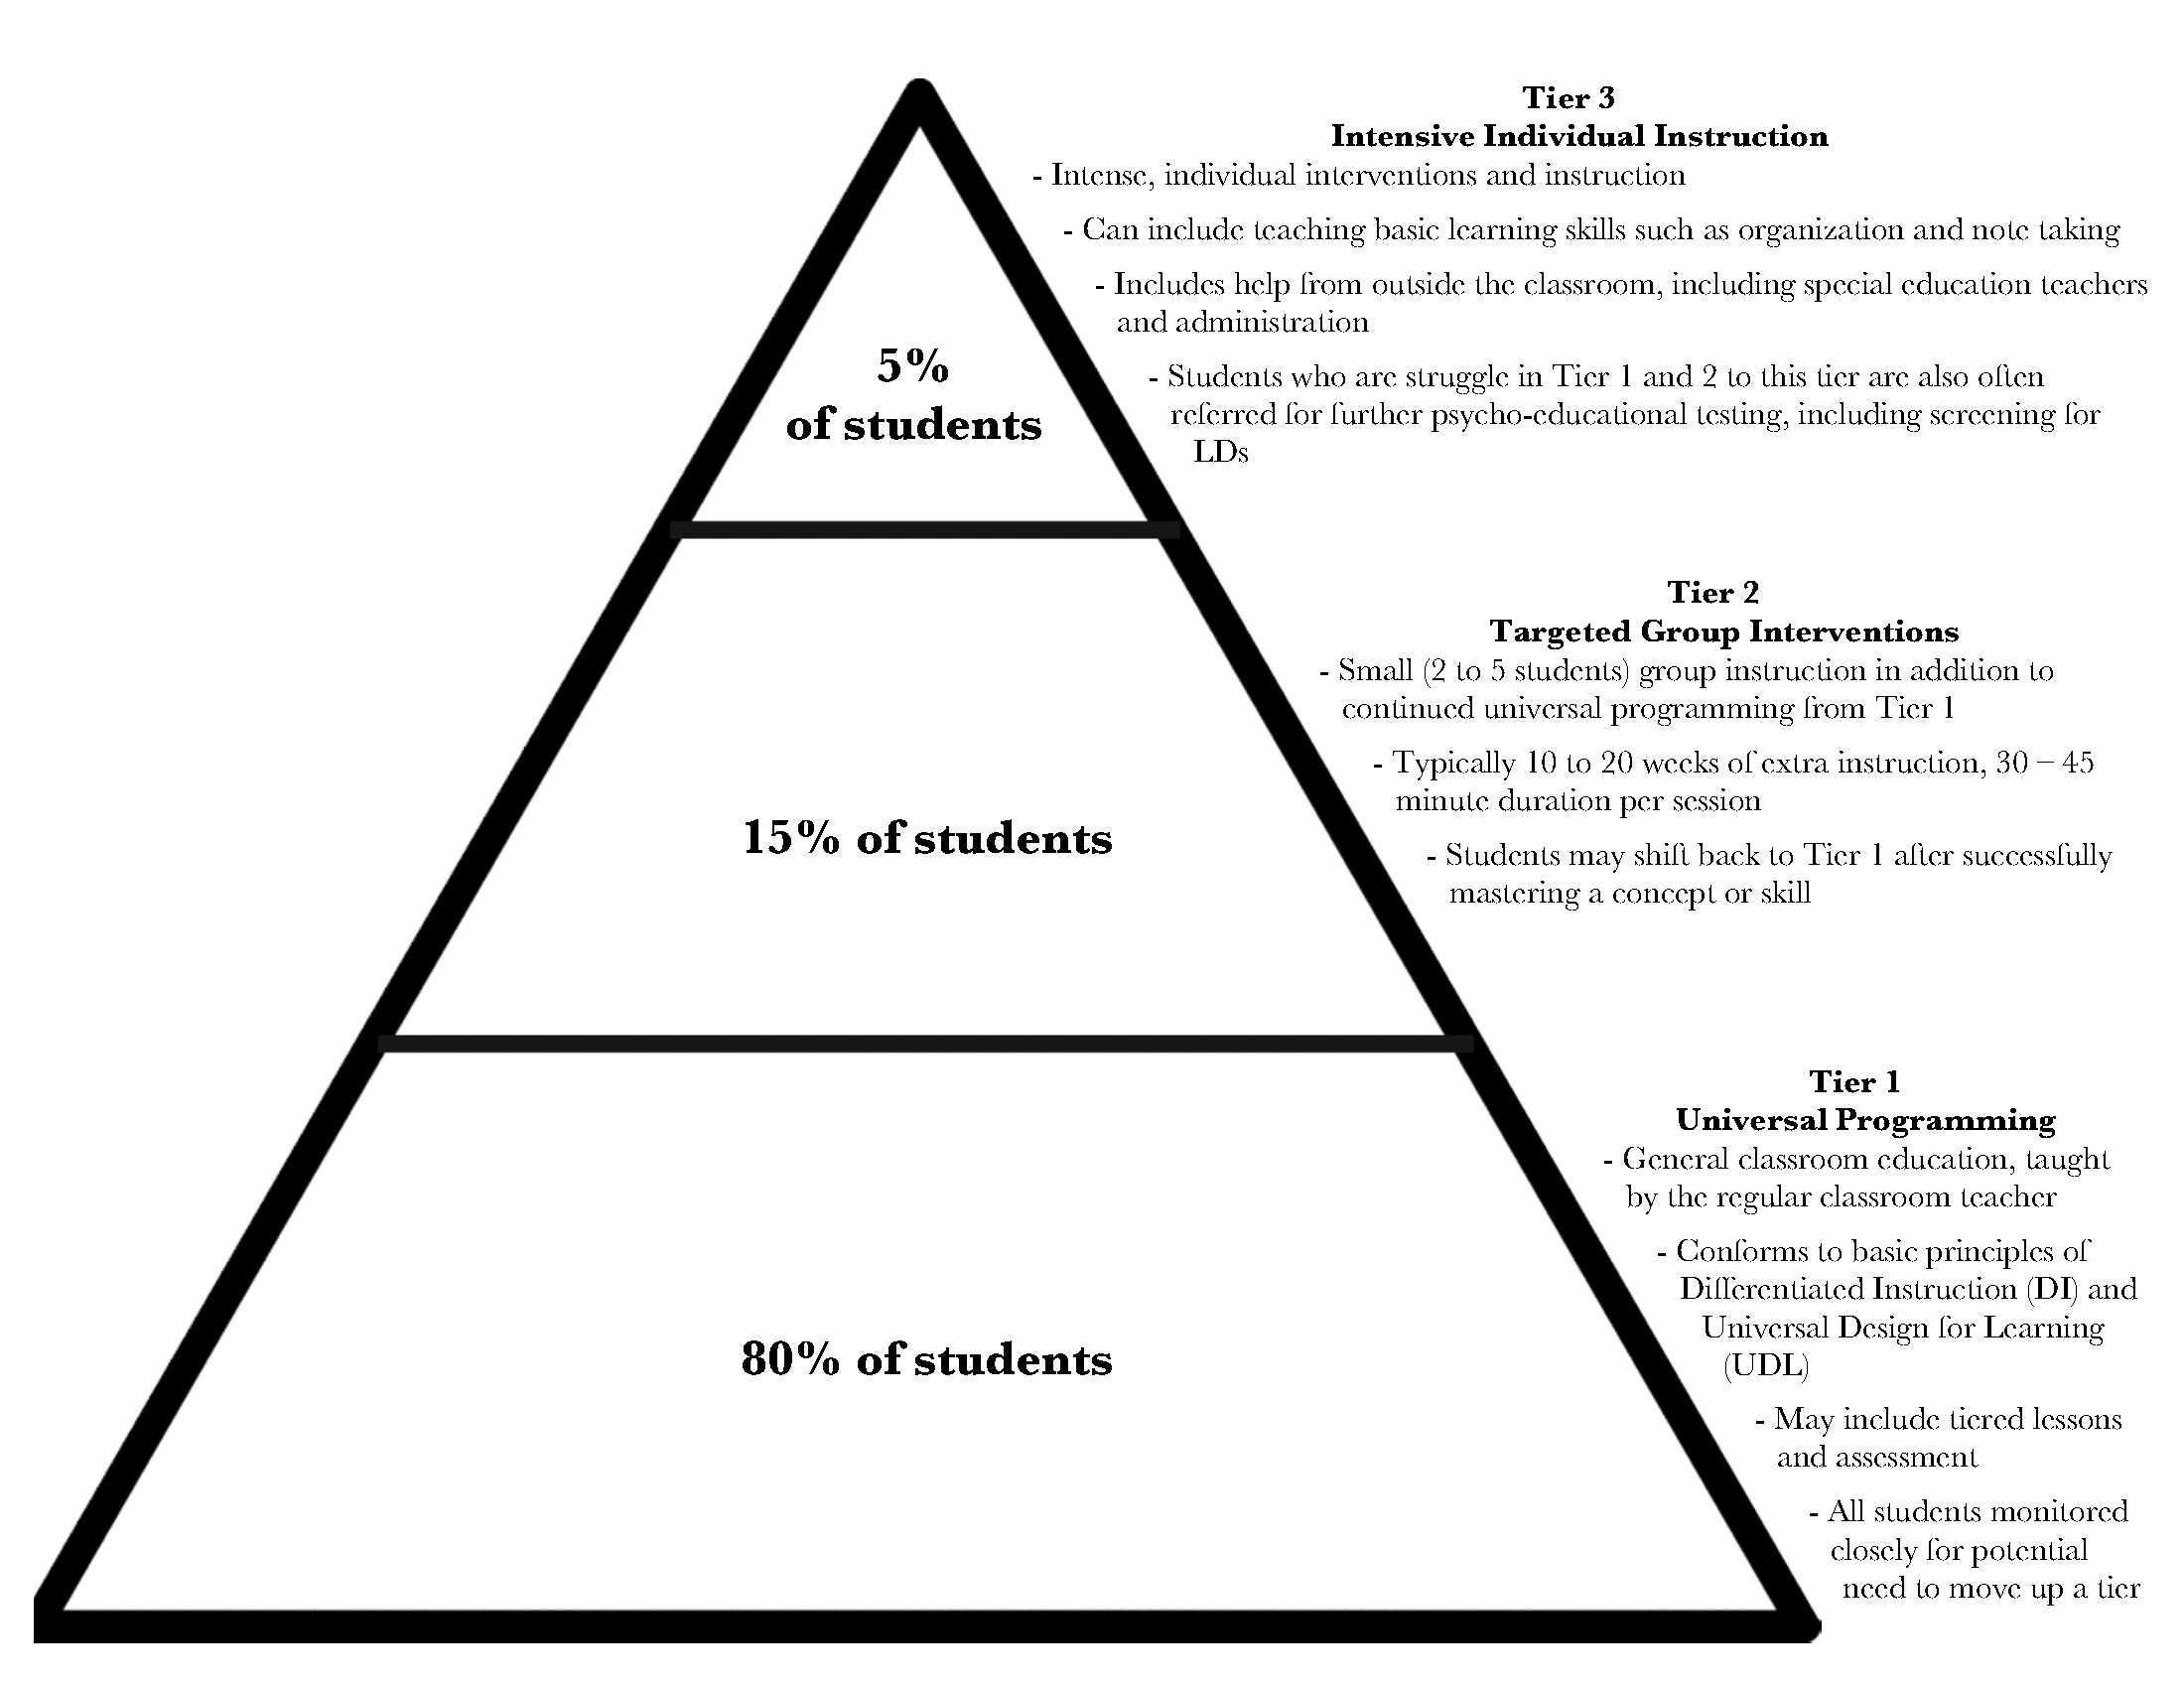 Tiered Approach represented in a pyramid. At the base there's Tier 1: Universal Programming : General classroom education, taught by the regular classroom teacher. Conforms to basic principles of Differentiated Instruction (DI) and Universal Design for Learning (UDL). May include tiered lessons and assessment. All students monitored closely for potential need to move up a tier. (This tier targets 80 % of students). In the middle of the pyramid there's Tier 2: Targeted Group Interventions: Small (2 to 5 students) group instruction in addition to continued universal programming from Tier 1. Typically 10 to 20 weeks of extra instruction, 30 – 45 minute duration per session. Students may shift back to Tier 1 after successfully mastering a concept or skill. (This tier targets 15% of students). At the tip of the pyramid there's Tier 3: Intensive Individual Instruction: Intense, individual interventions and instruction. Can include teaching basic learning skills such as organization and note taking. Includes help from outside the classroom, including special education teachers and administration. Students who are struggle in Tier 1 and 2 to this tier are also often referred for further psycho-educational testing, including screening for LDs. (This tier targets 5% of students).